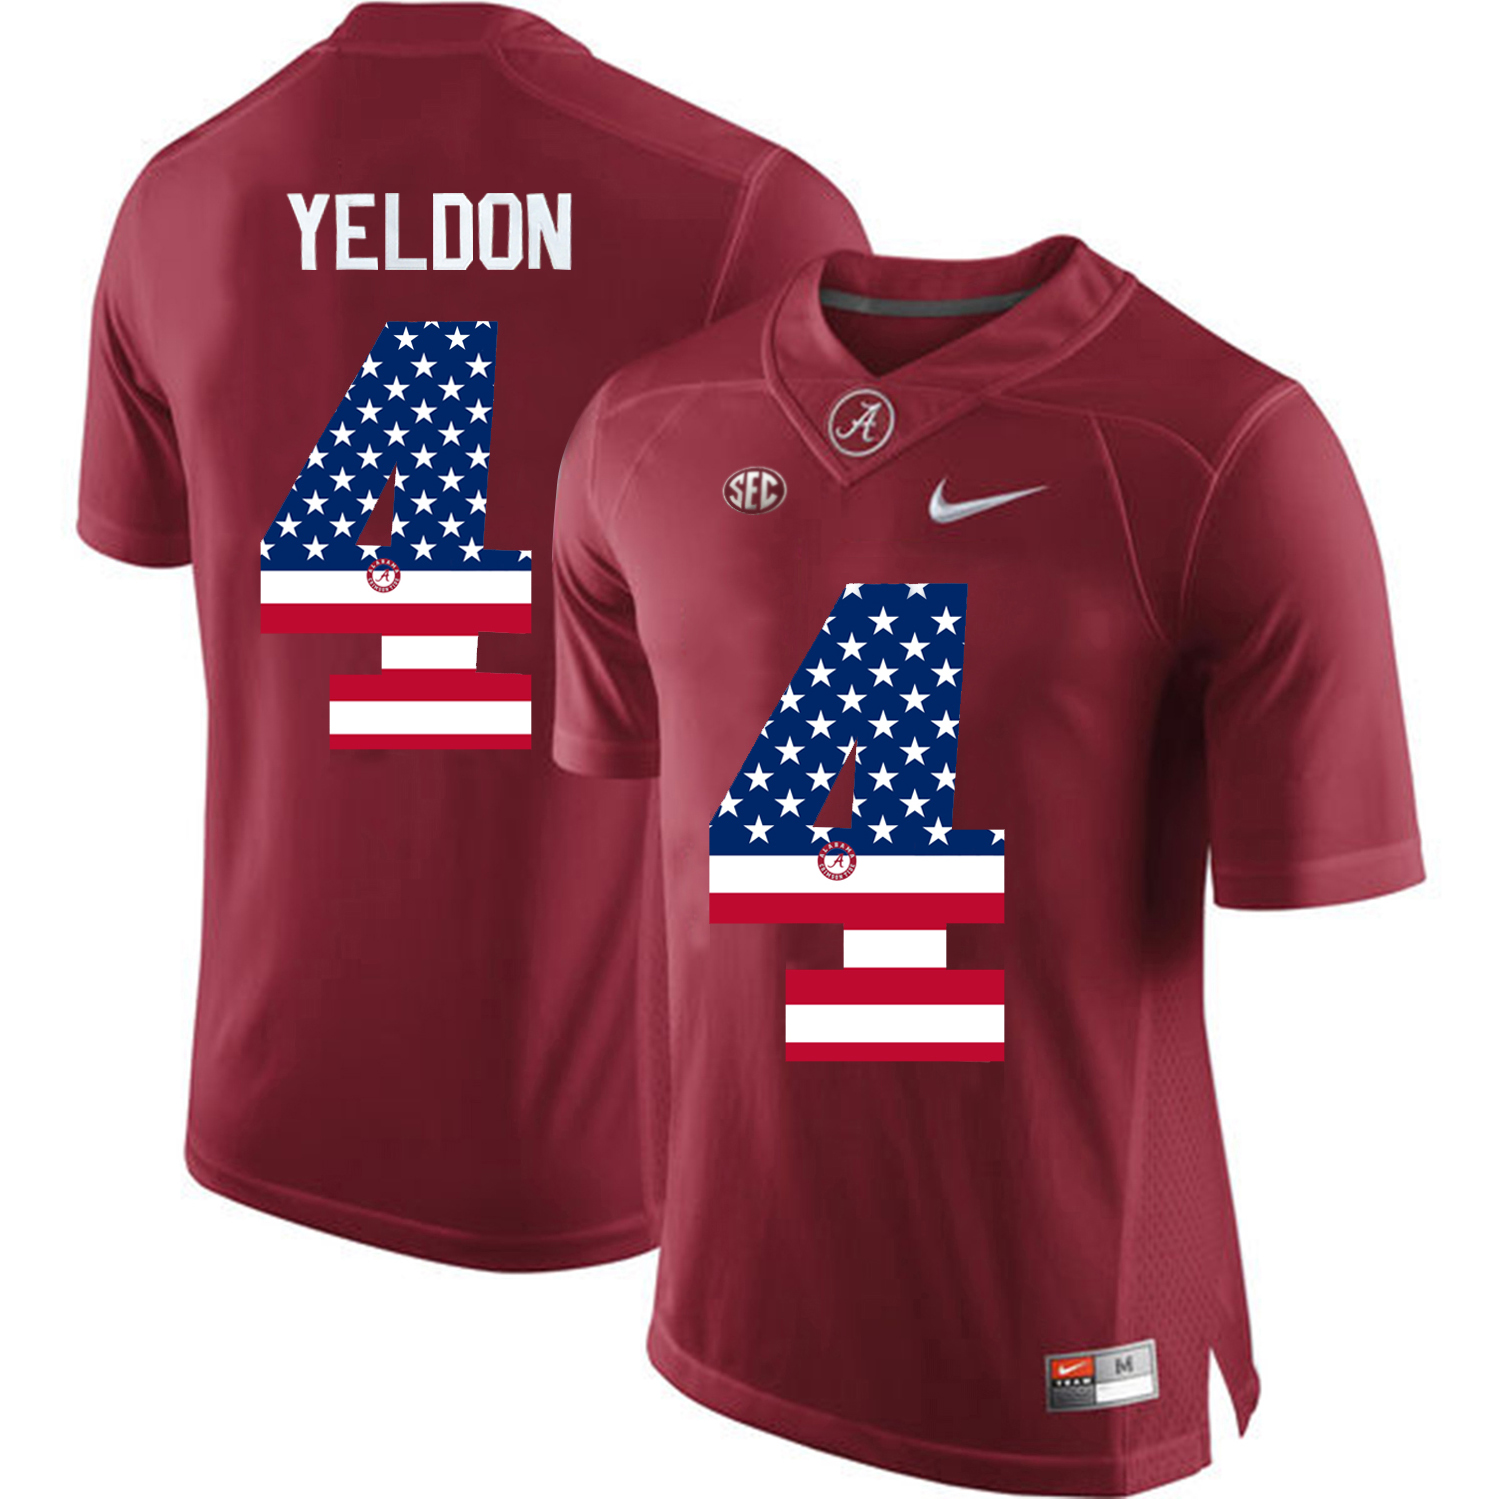 2016 US Flag Fashion Alabama Crimson Tide T.J Yeldon 4 College Football Diamond Quest Jerseys Crimson